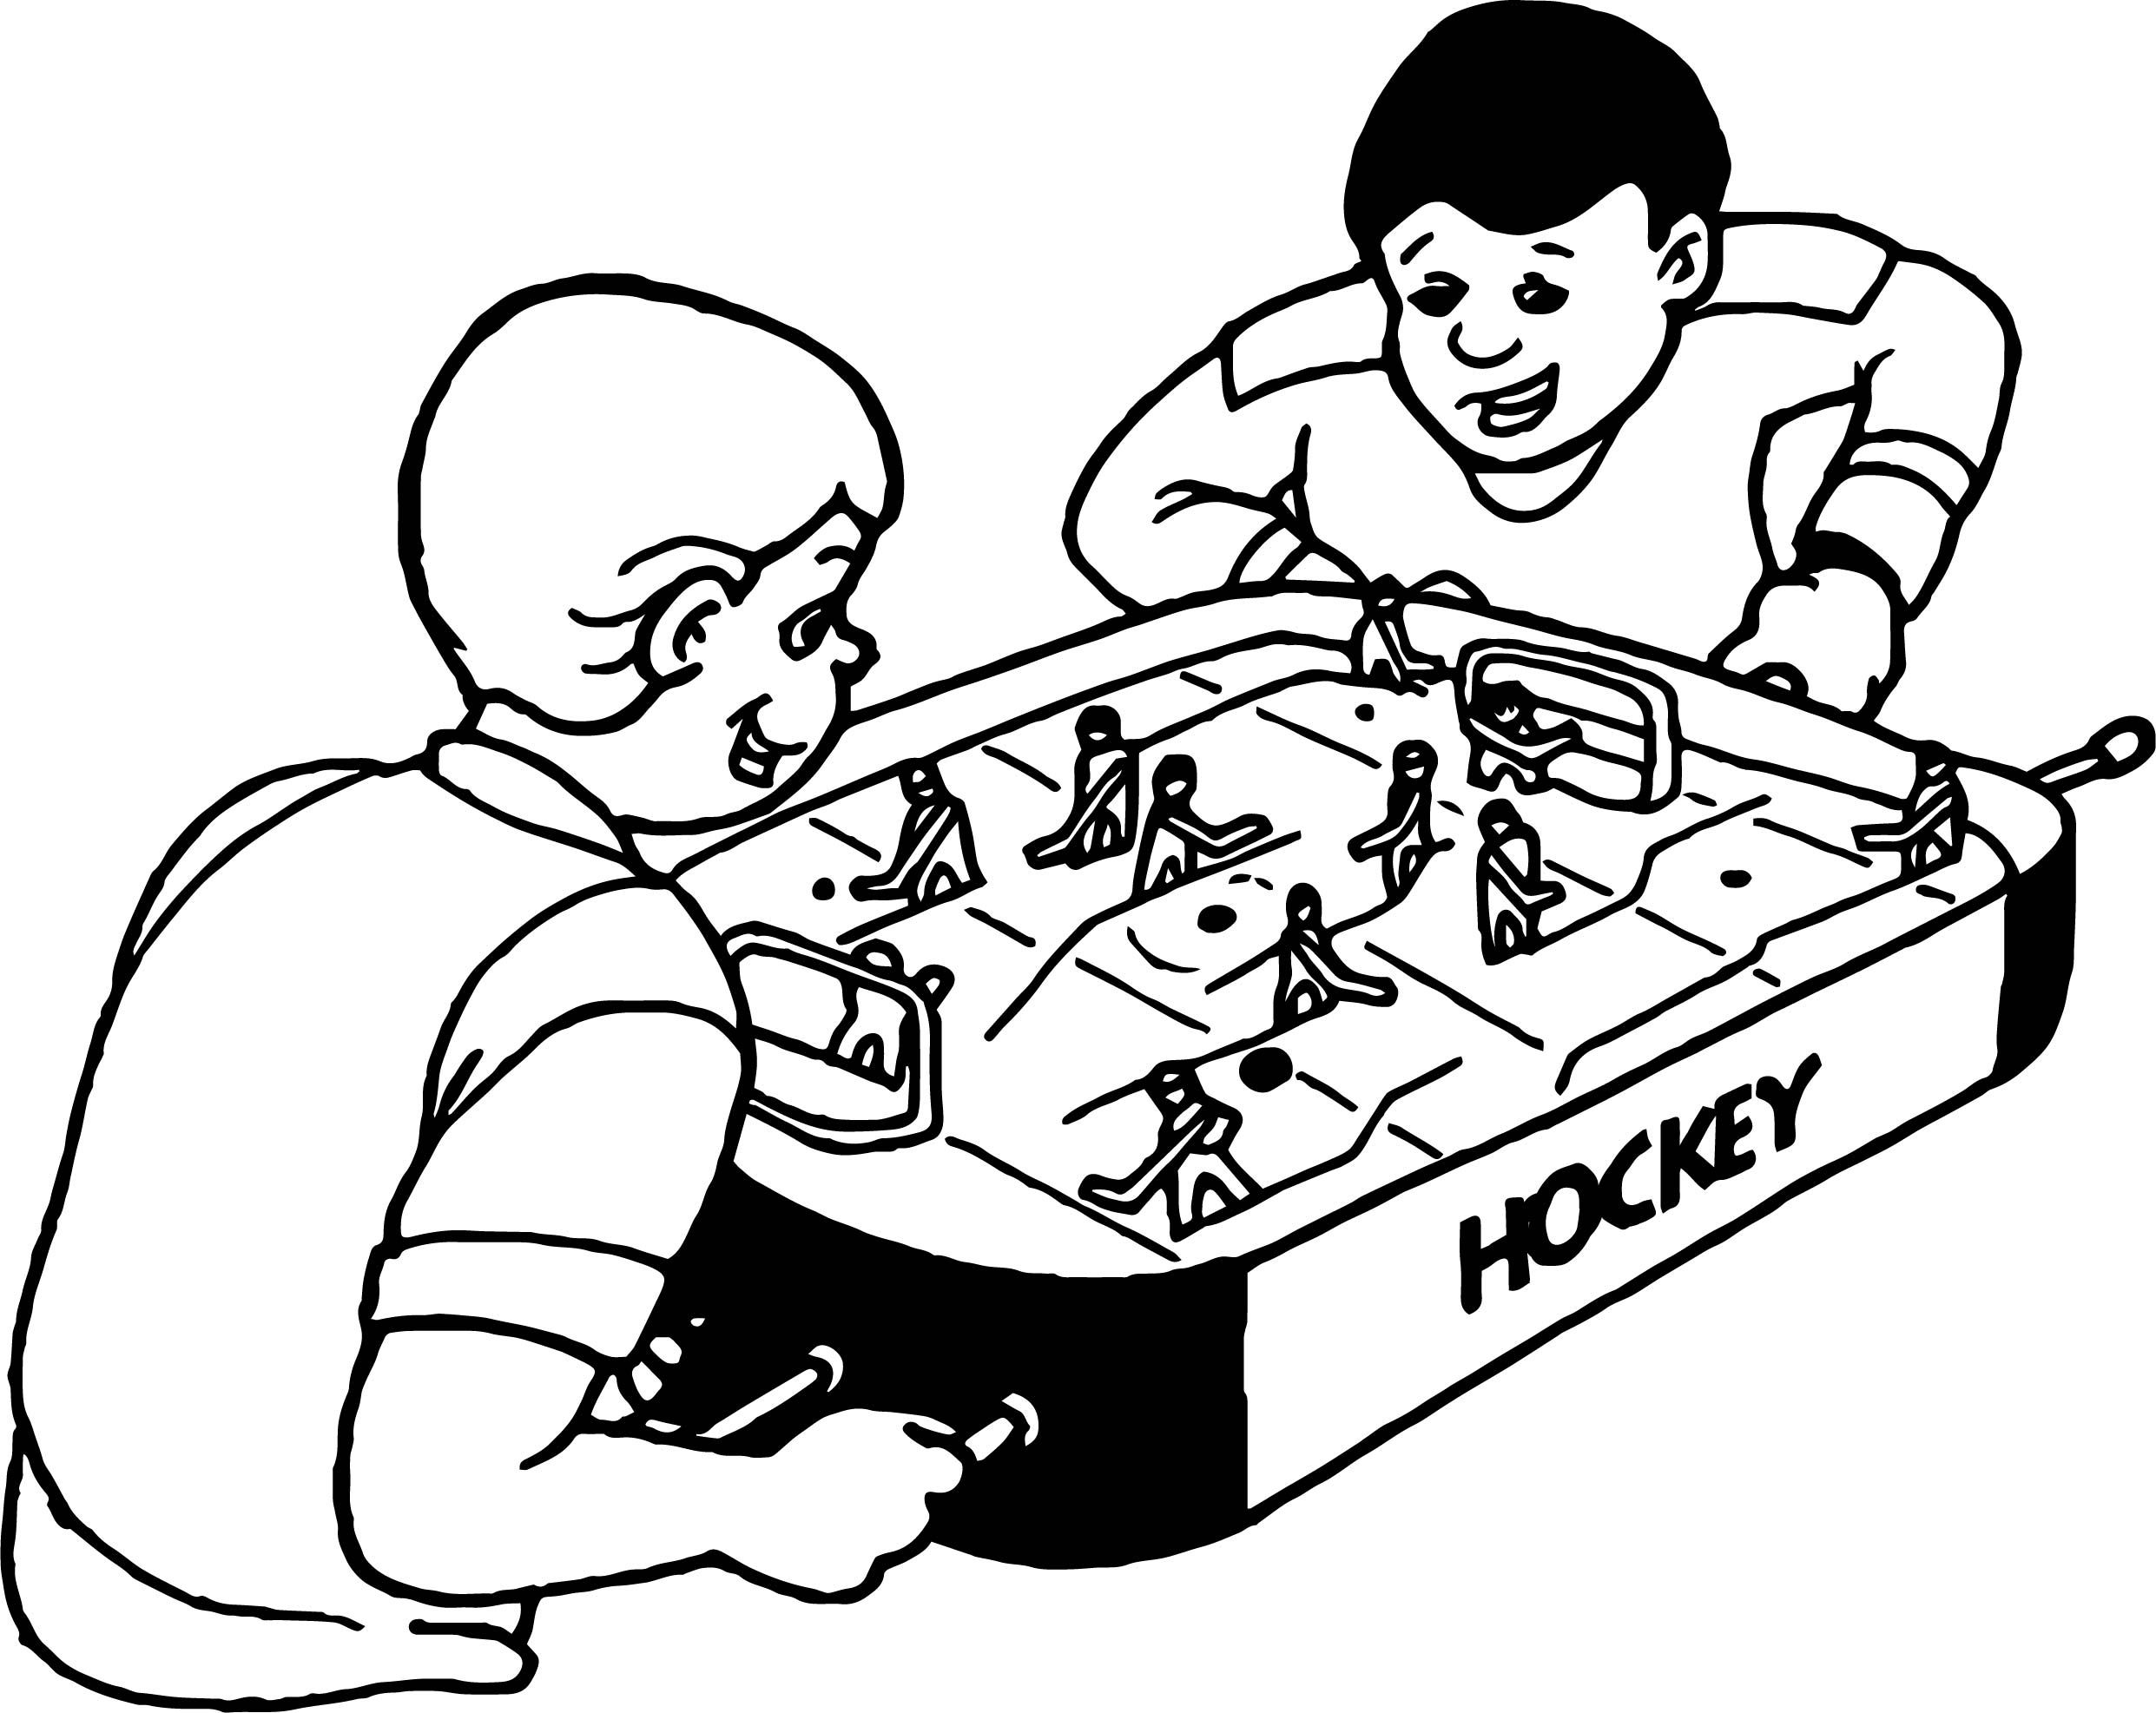 25 Coloring Pages Of Hockey Players | Coloring Pages | Pinterest ...